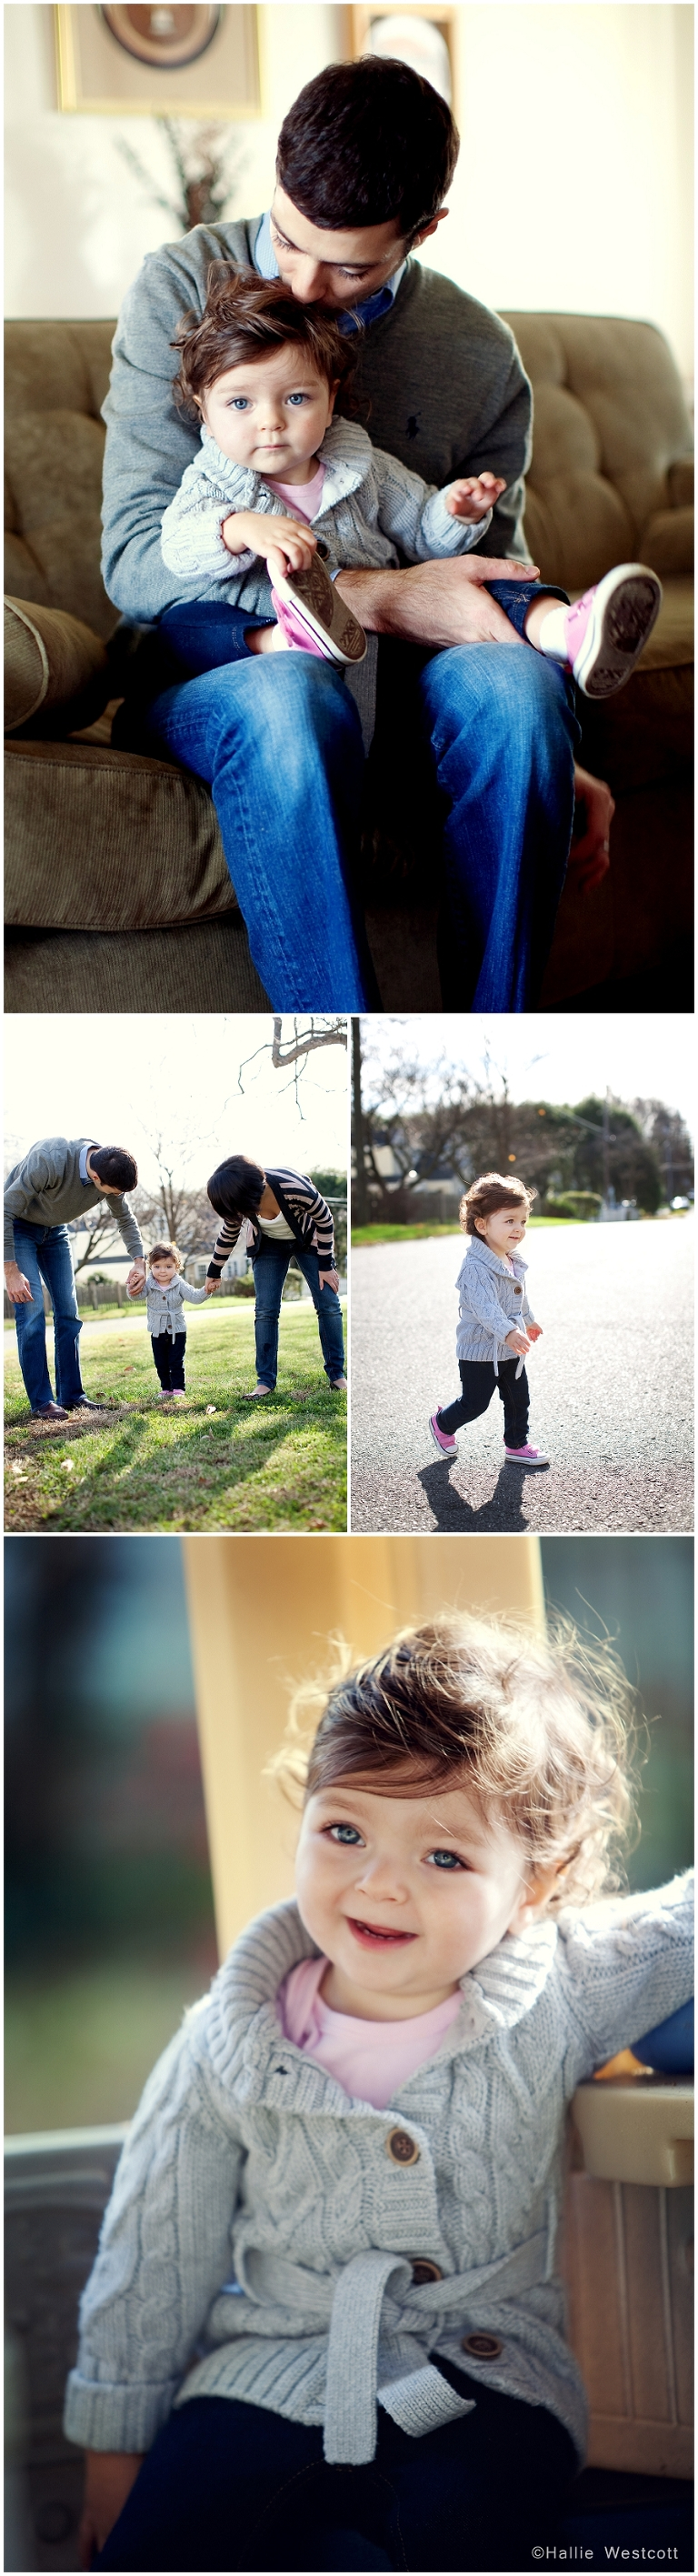 Photographing family moments for a CT family